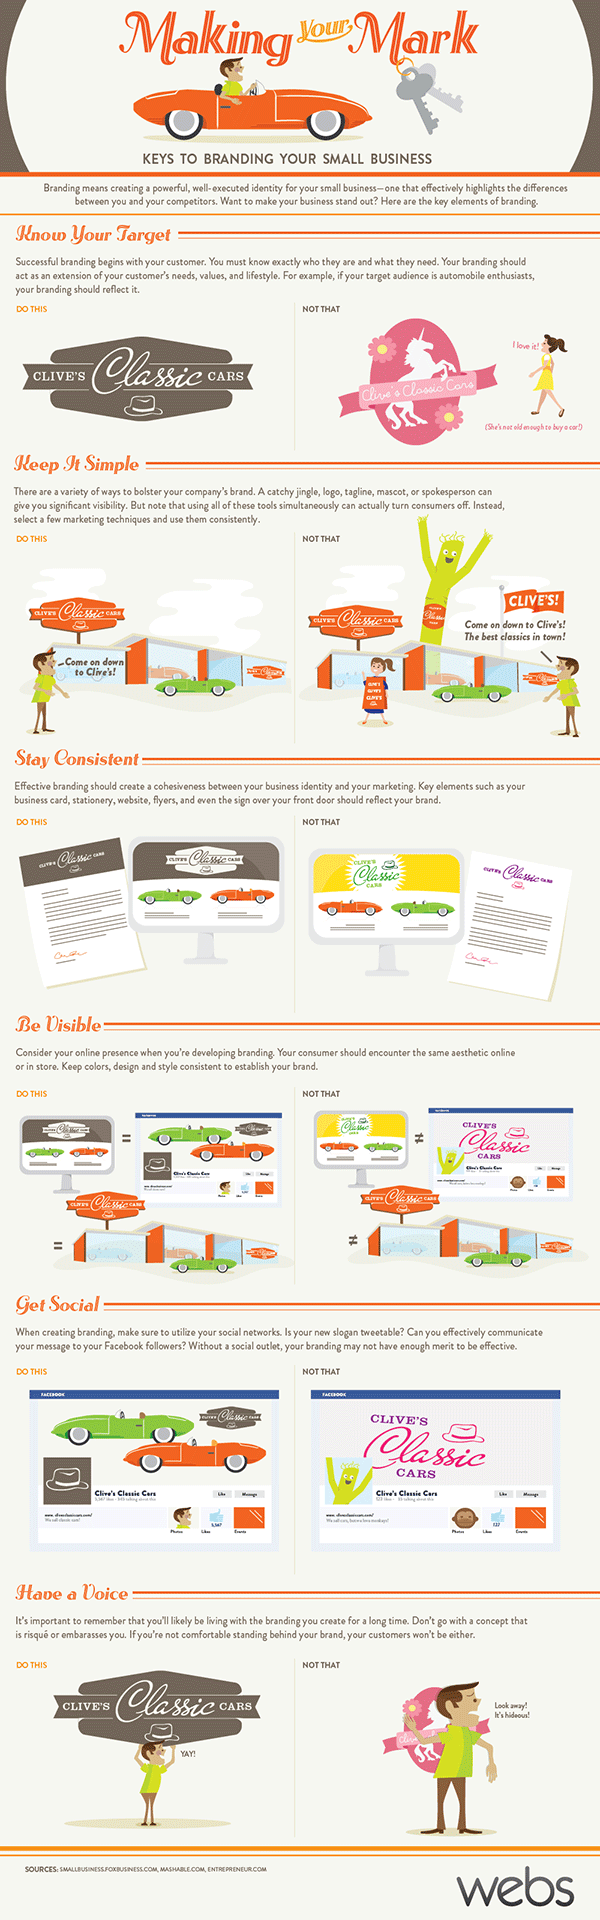 simple-guide-to-branding-infographic